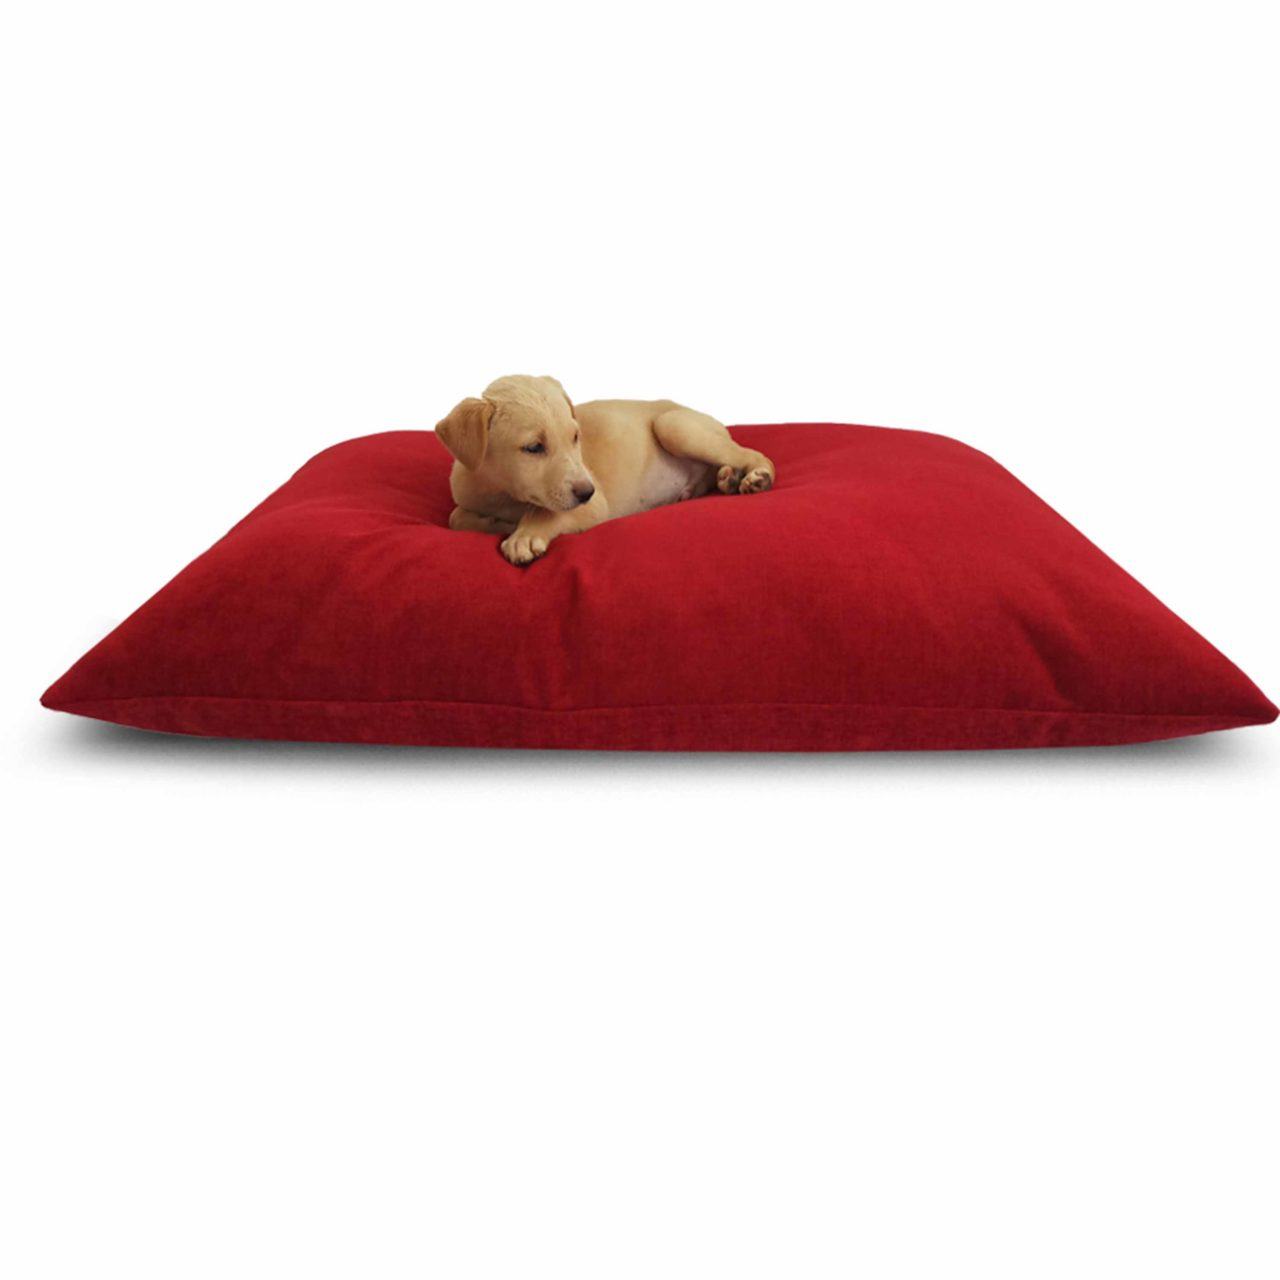 Dog Bed Cover for Prazuchi Waterproof Beds| All sizes available |